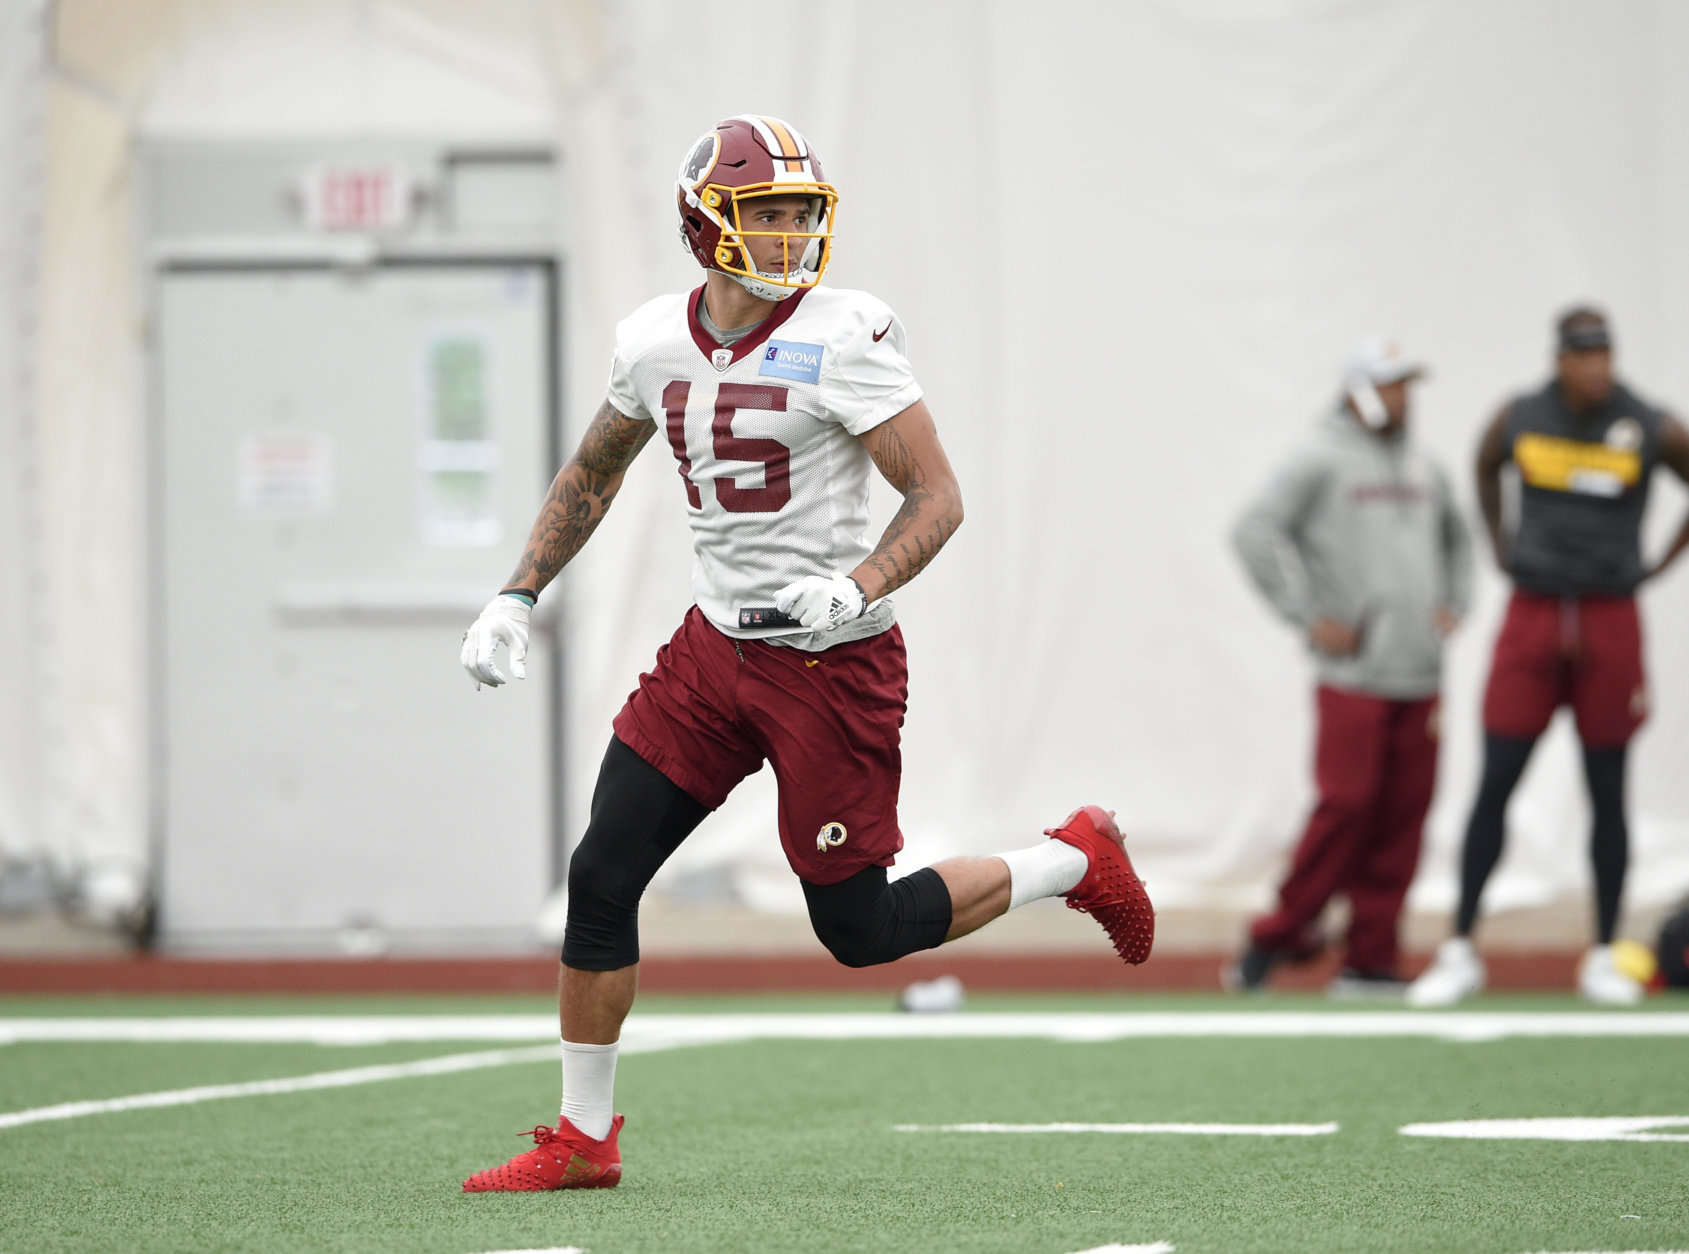 Washington Redskins wide receiver Simmie Cobbs (15) runs a pass route during an NFL football team practice, Wednesday, June 13, 2018, in Ashburn, Va. (AP Photo/Nick Wass)